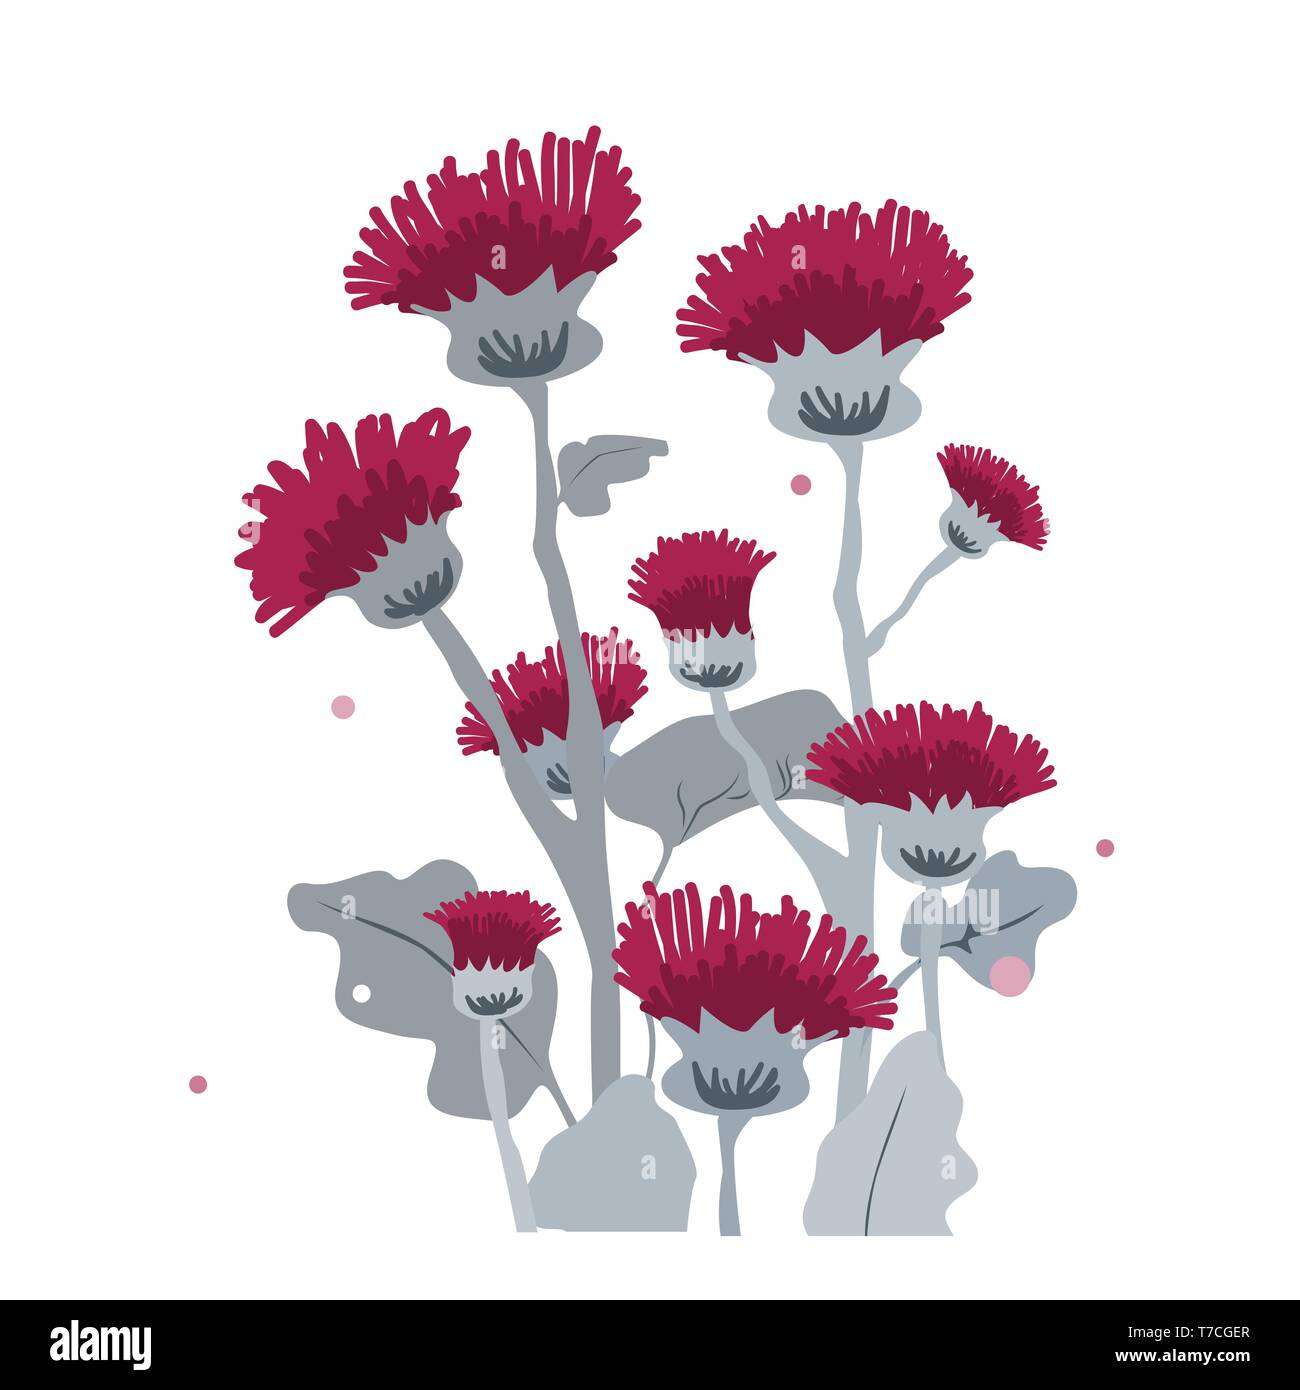 Thistle or burdock flowers. Cartoon thistle isolated on white, vector illustration - Stock Image